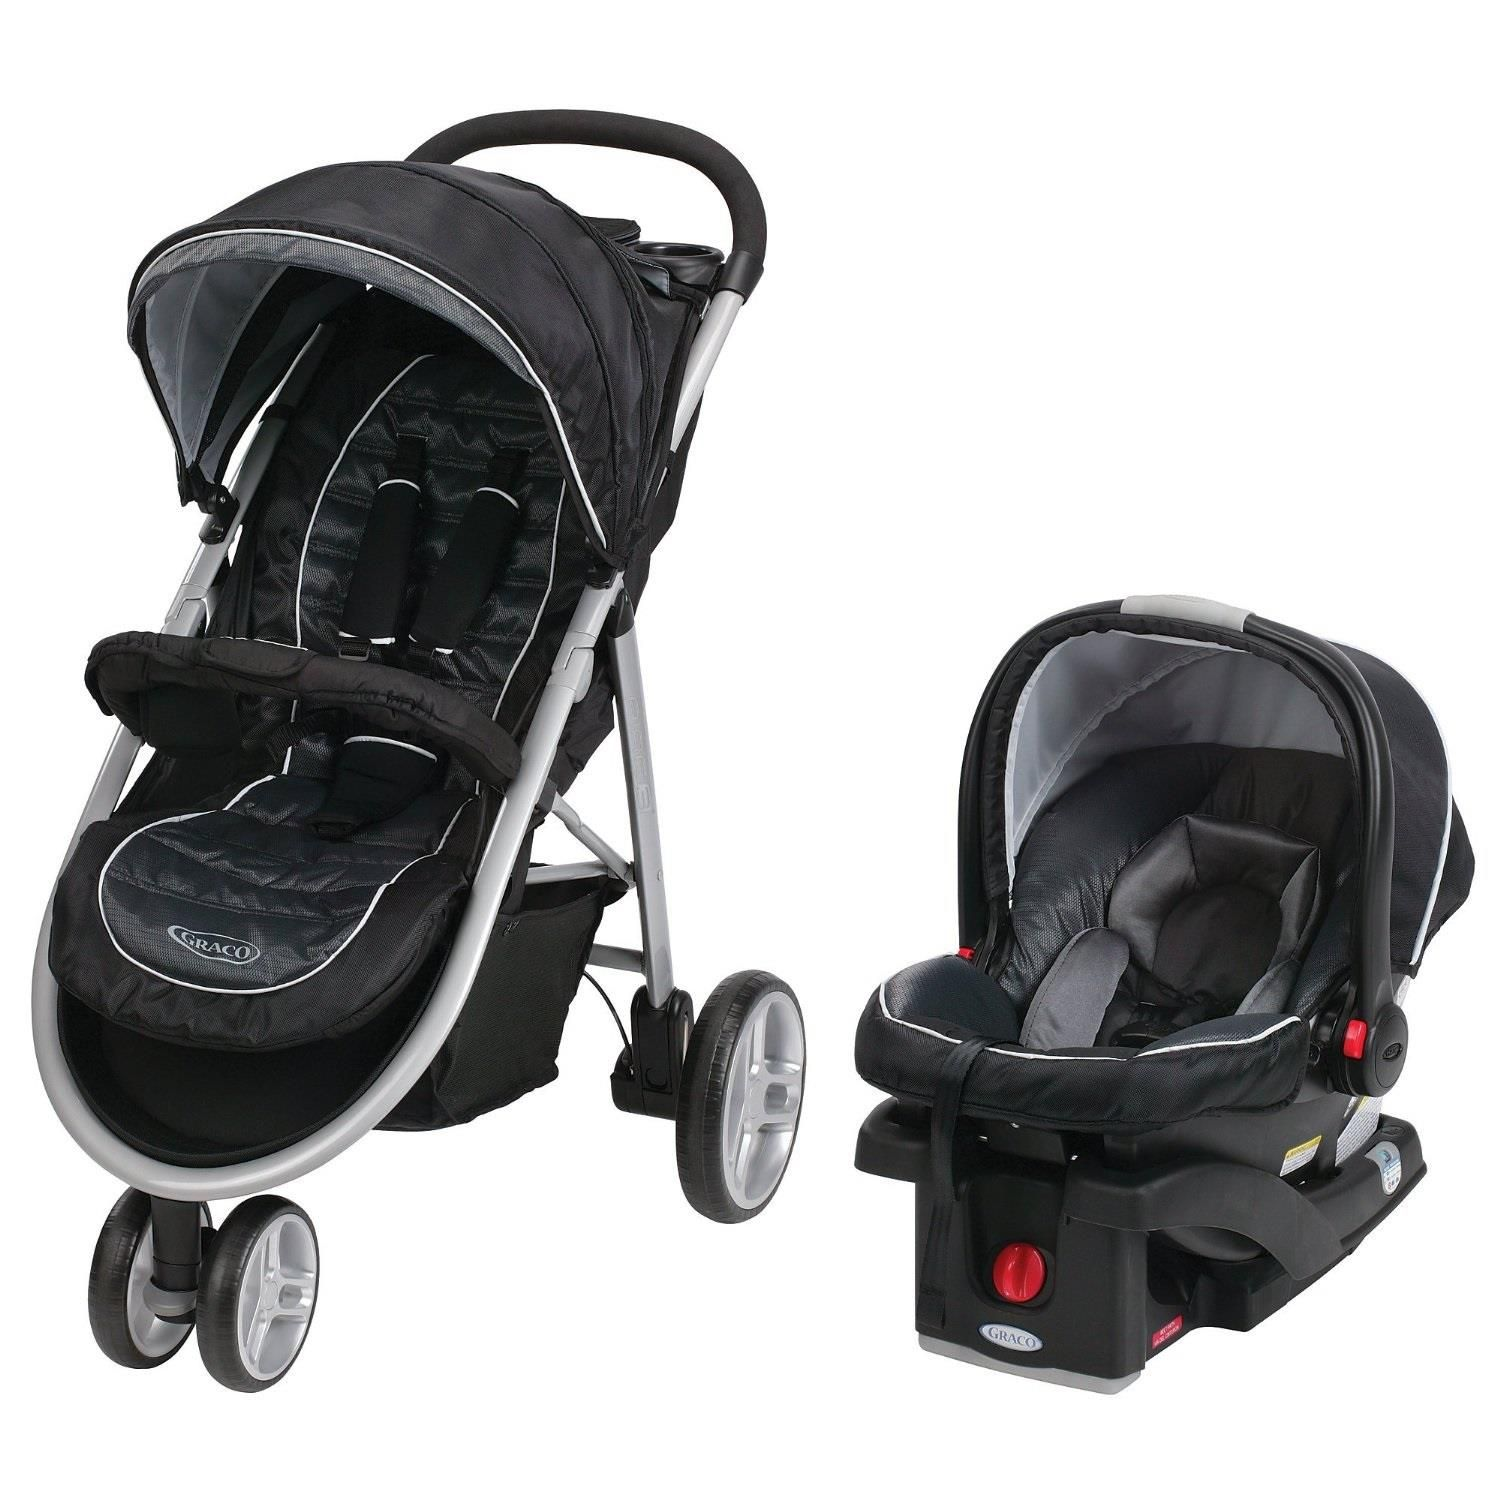 Graco Aire3 Click Connect Travel System - Gotham